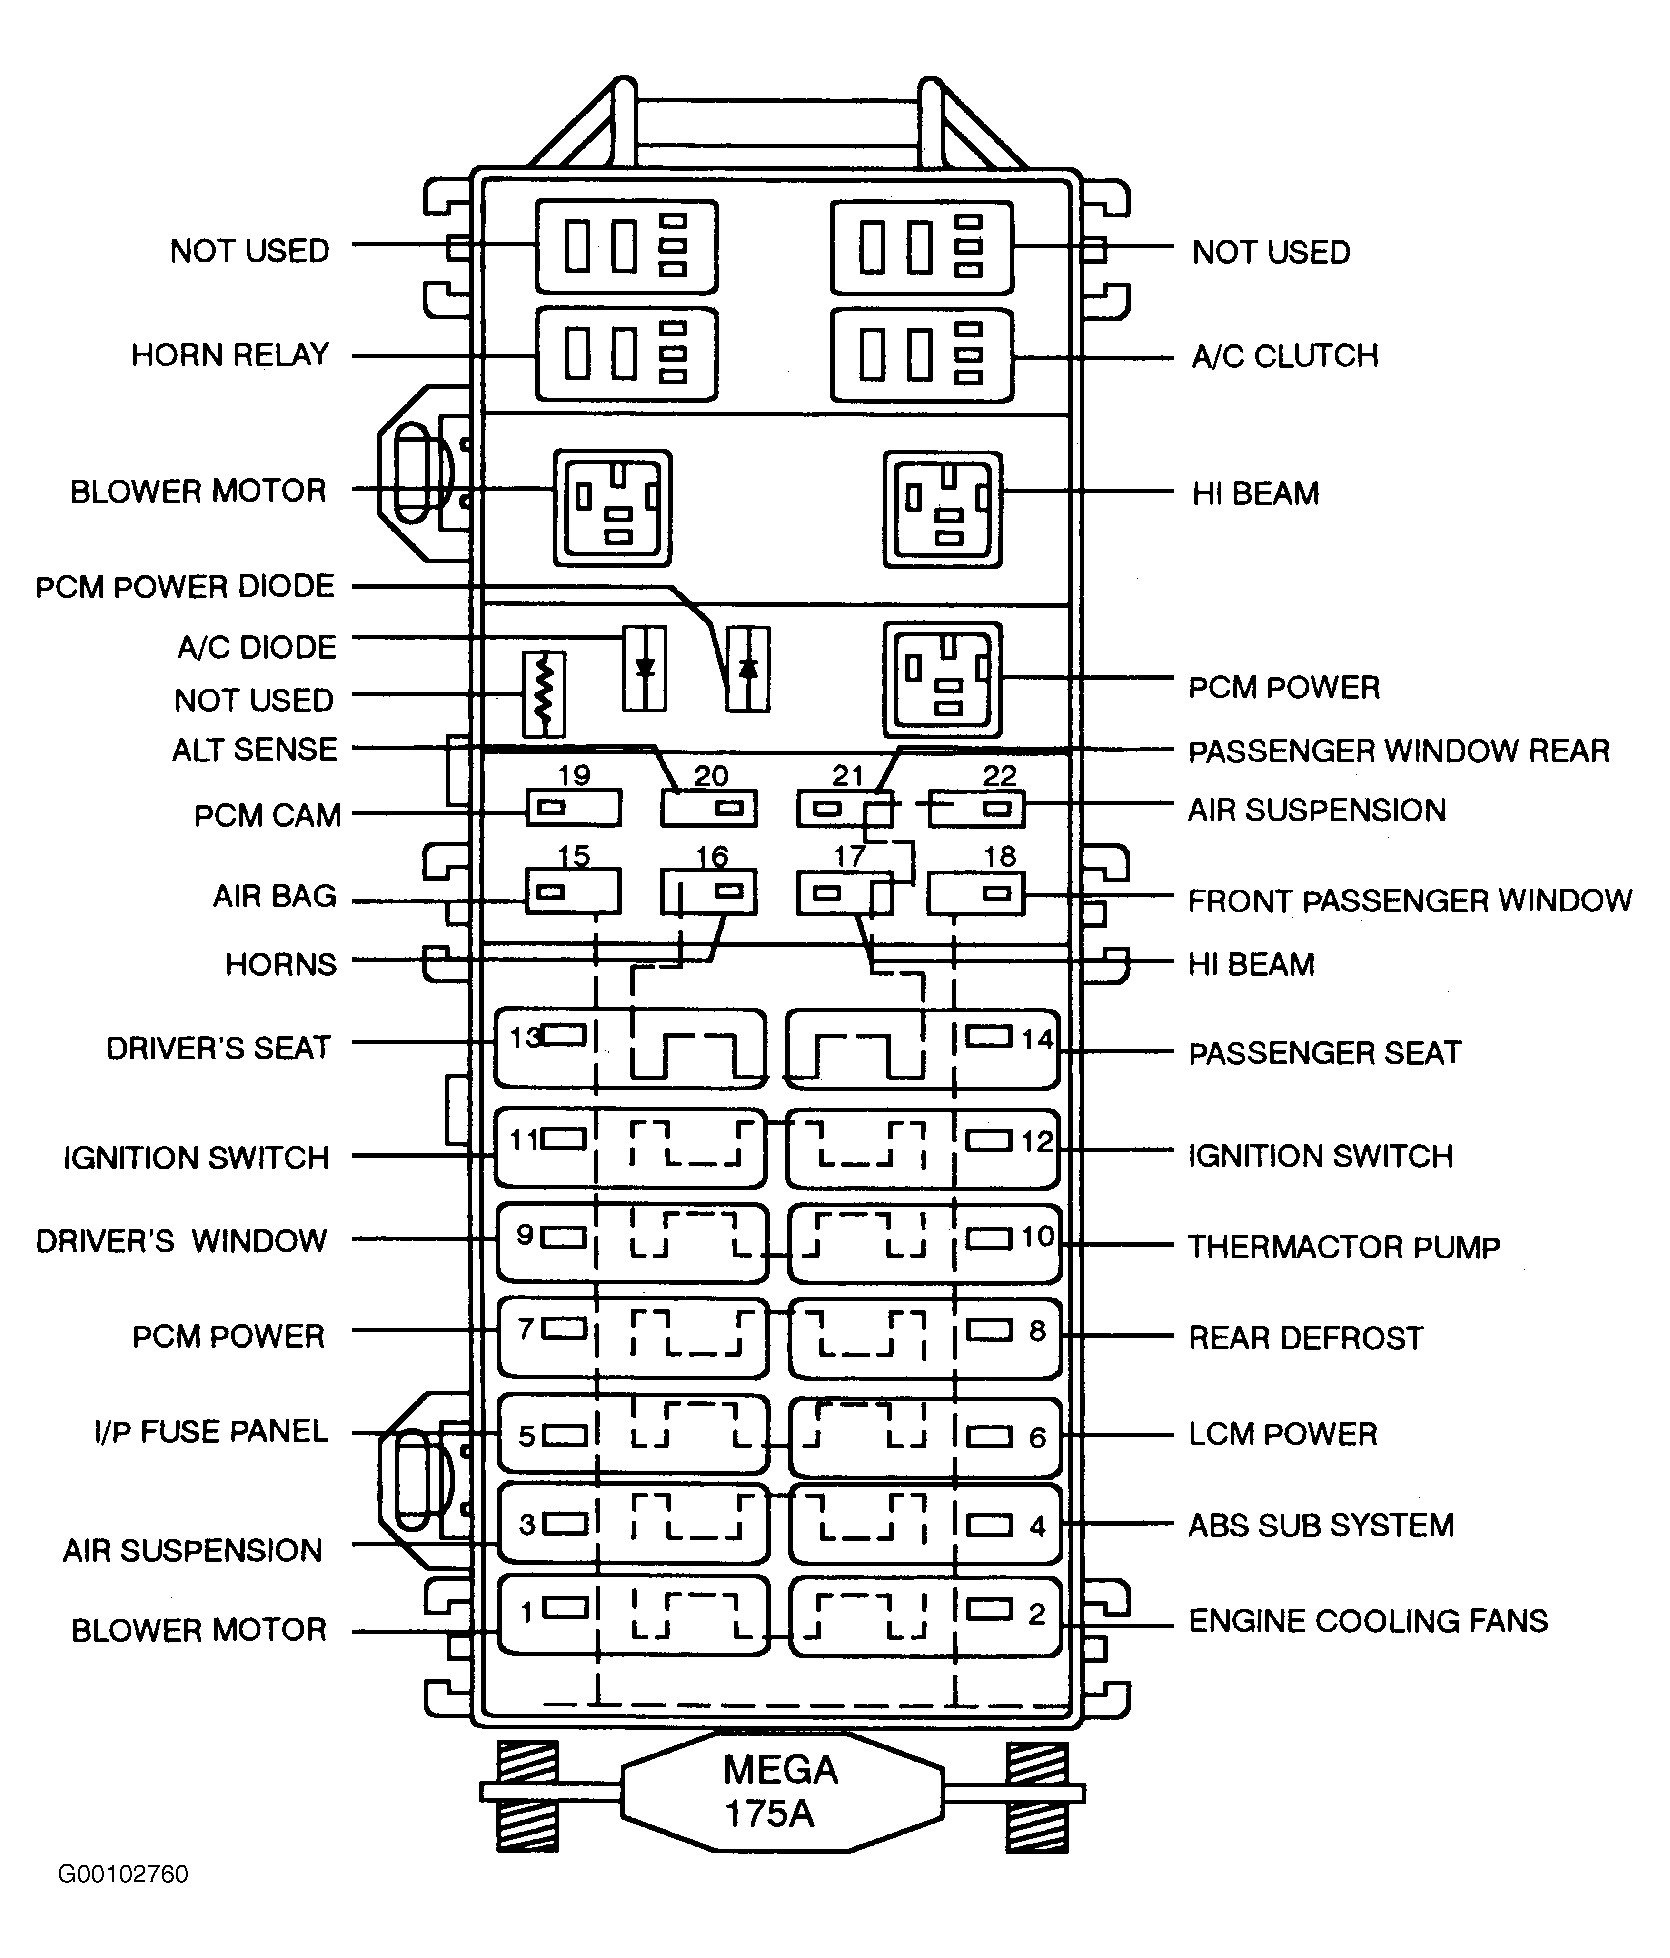 hight resolution of ep3 fuse diagram electrical wiring diagrams rh 21 lowrysdriedmeat de electrical fuse diagram ep3 interior fuse